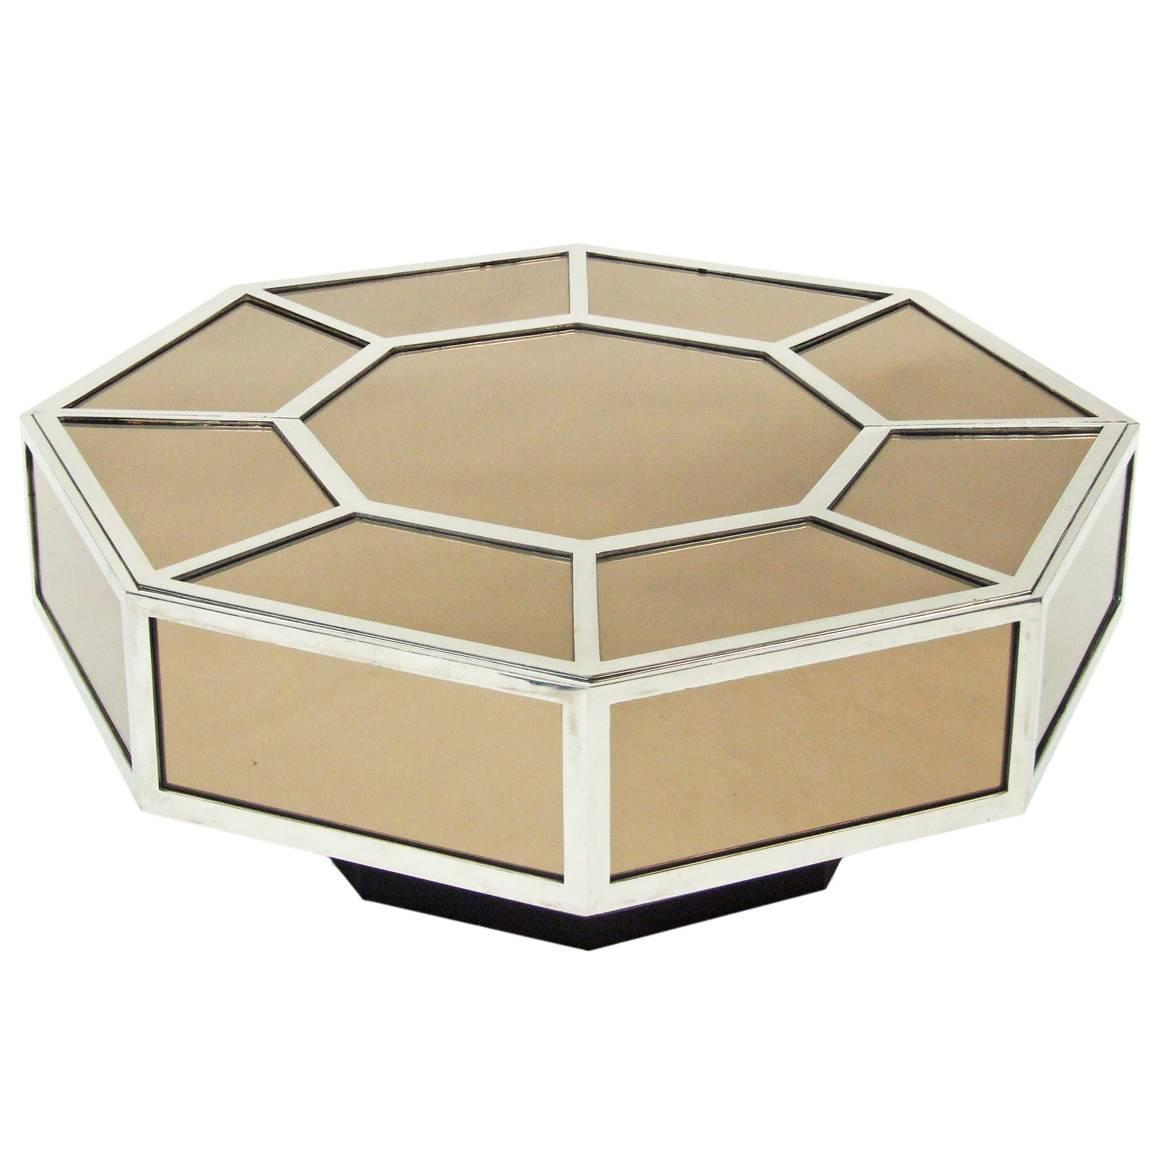 Mirrored Octagon Coffee Table: 1960s Mirrored Chrome Octagonal Deco Coffee Table At 1stdibs